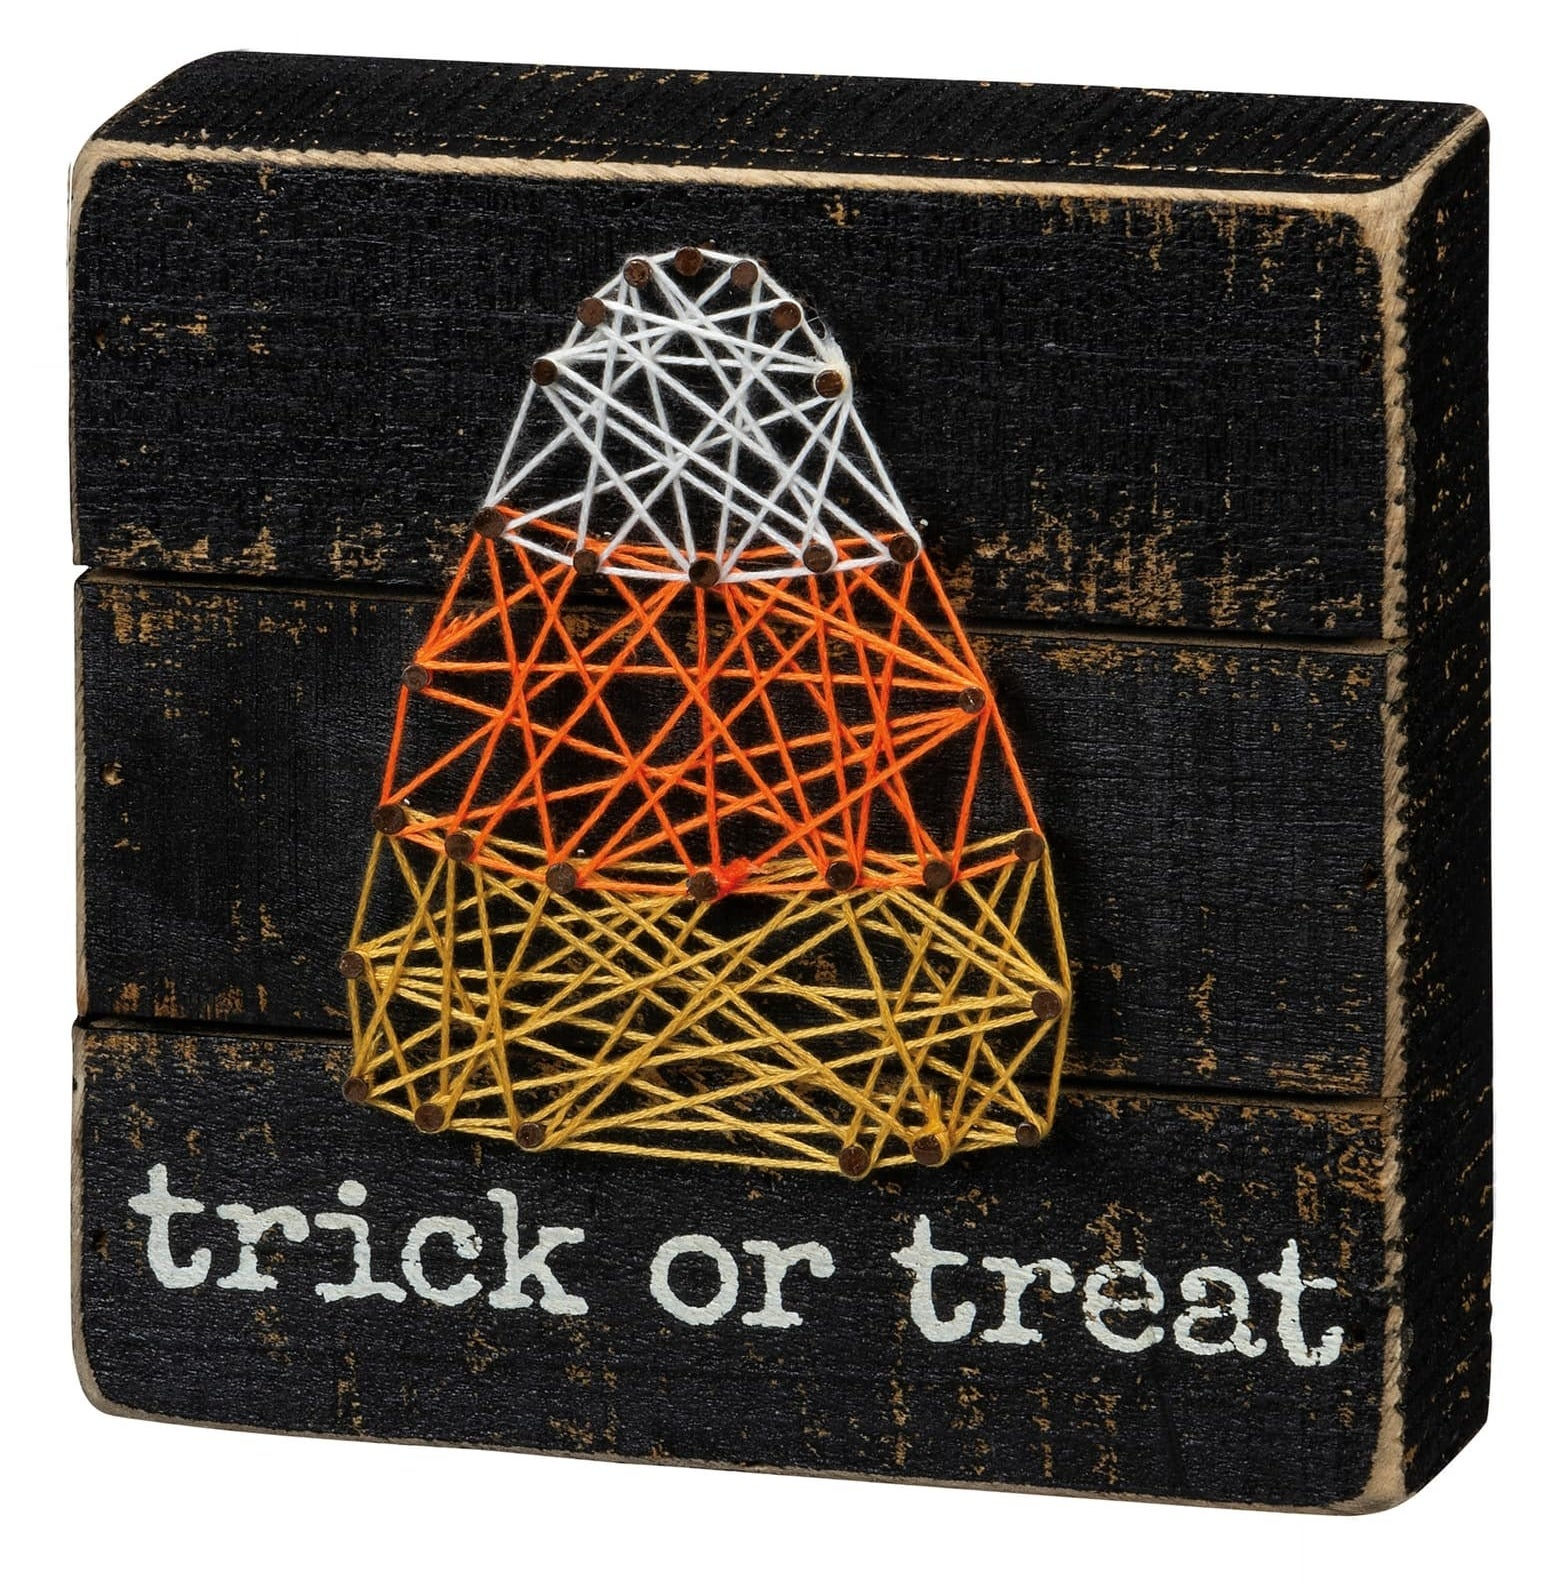 The black box sign says trick or treat in white letters and features a candy corn string art design